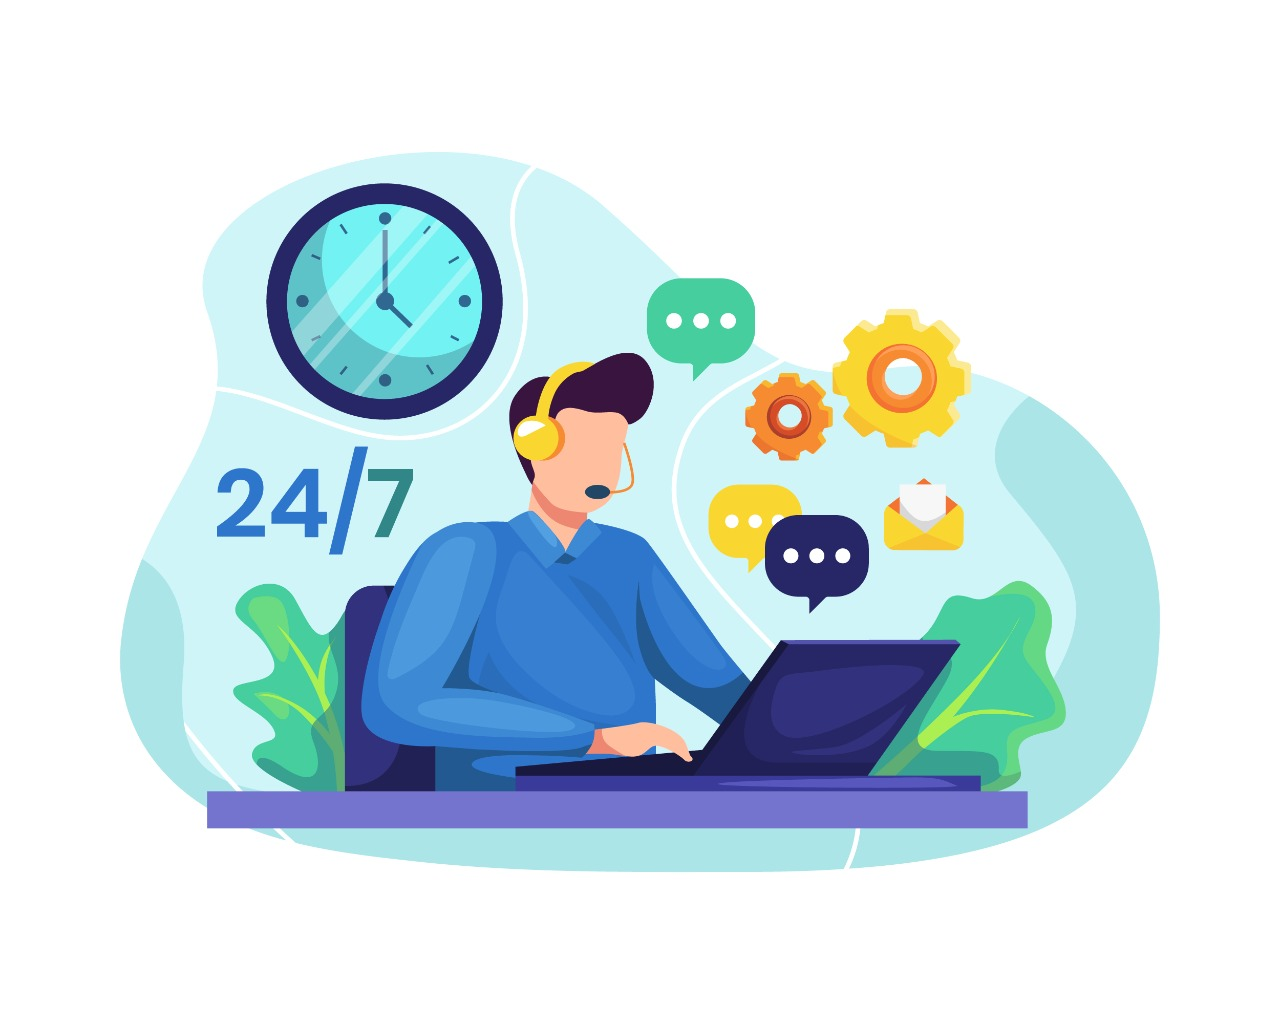 image-showing-customer-care-executive-available-24/7